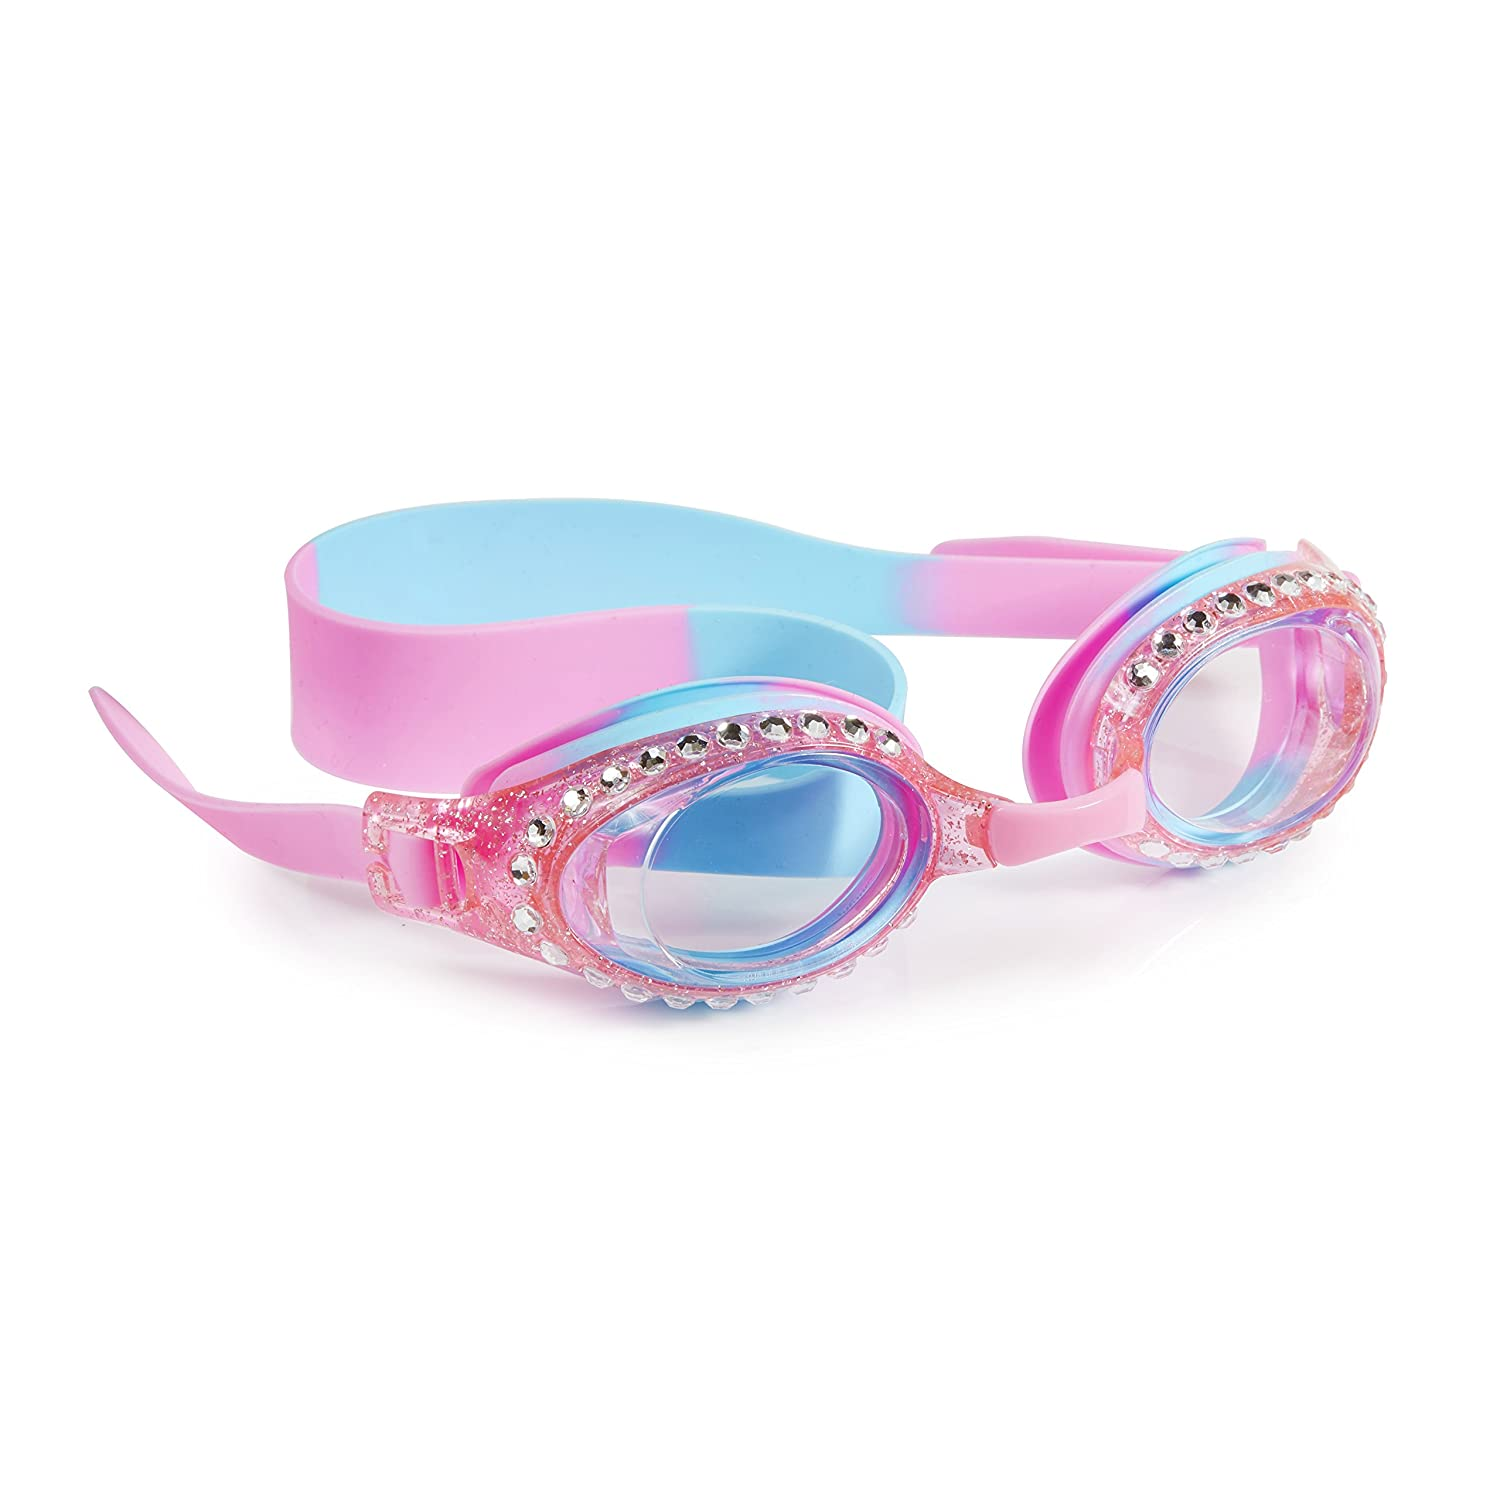 787893ceab6b Swimming Goggles For Girls - New Glitter Classic Kids Swim Goggles By  Bling2o (Peppermint Pat Pink)